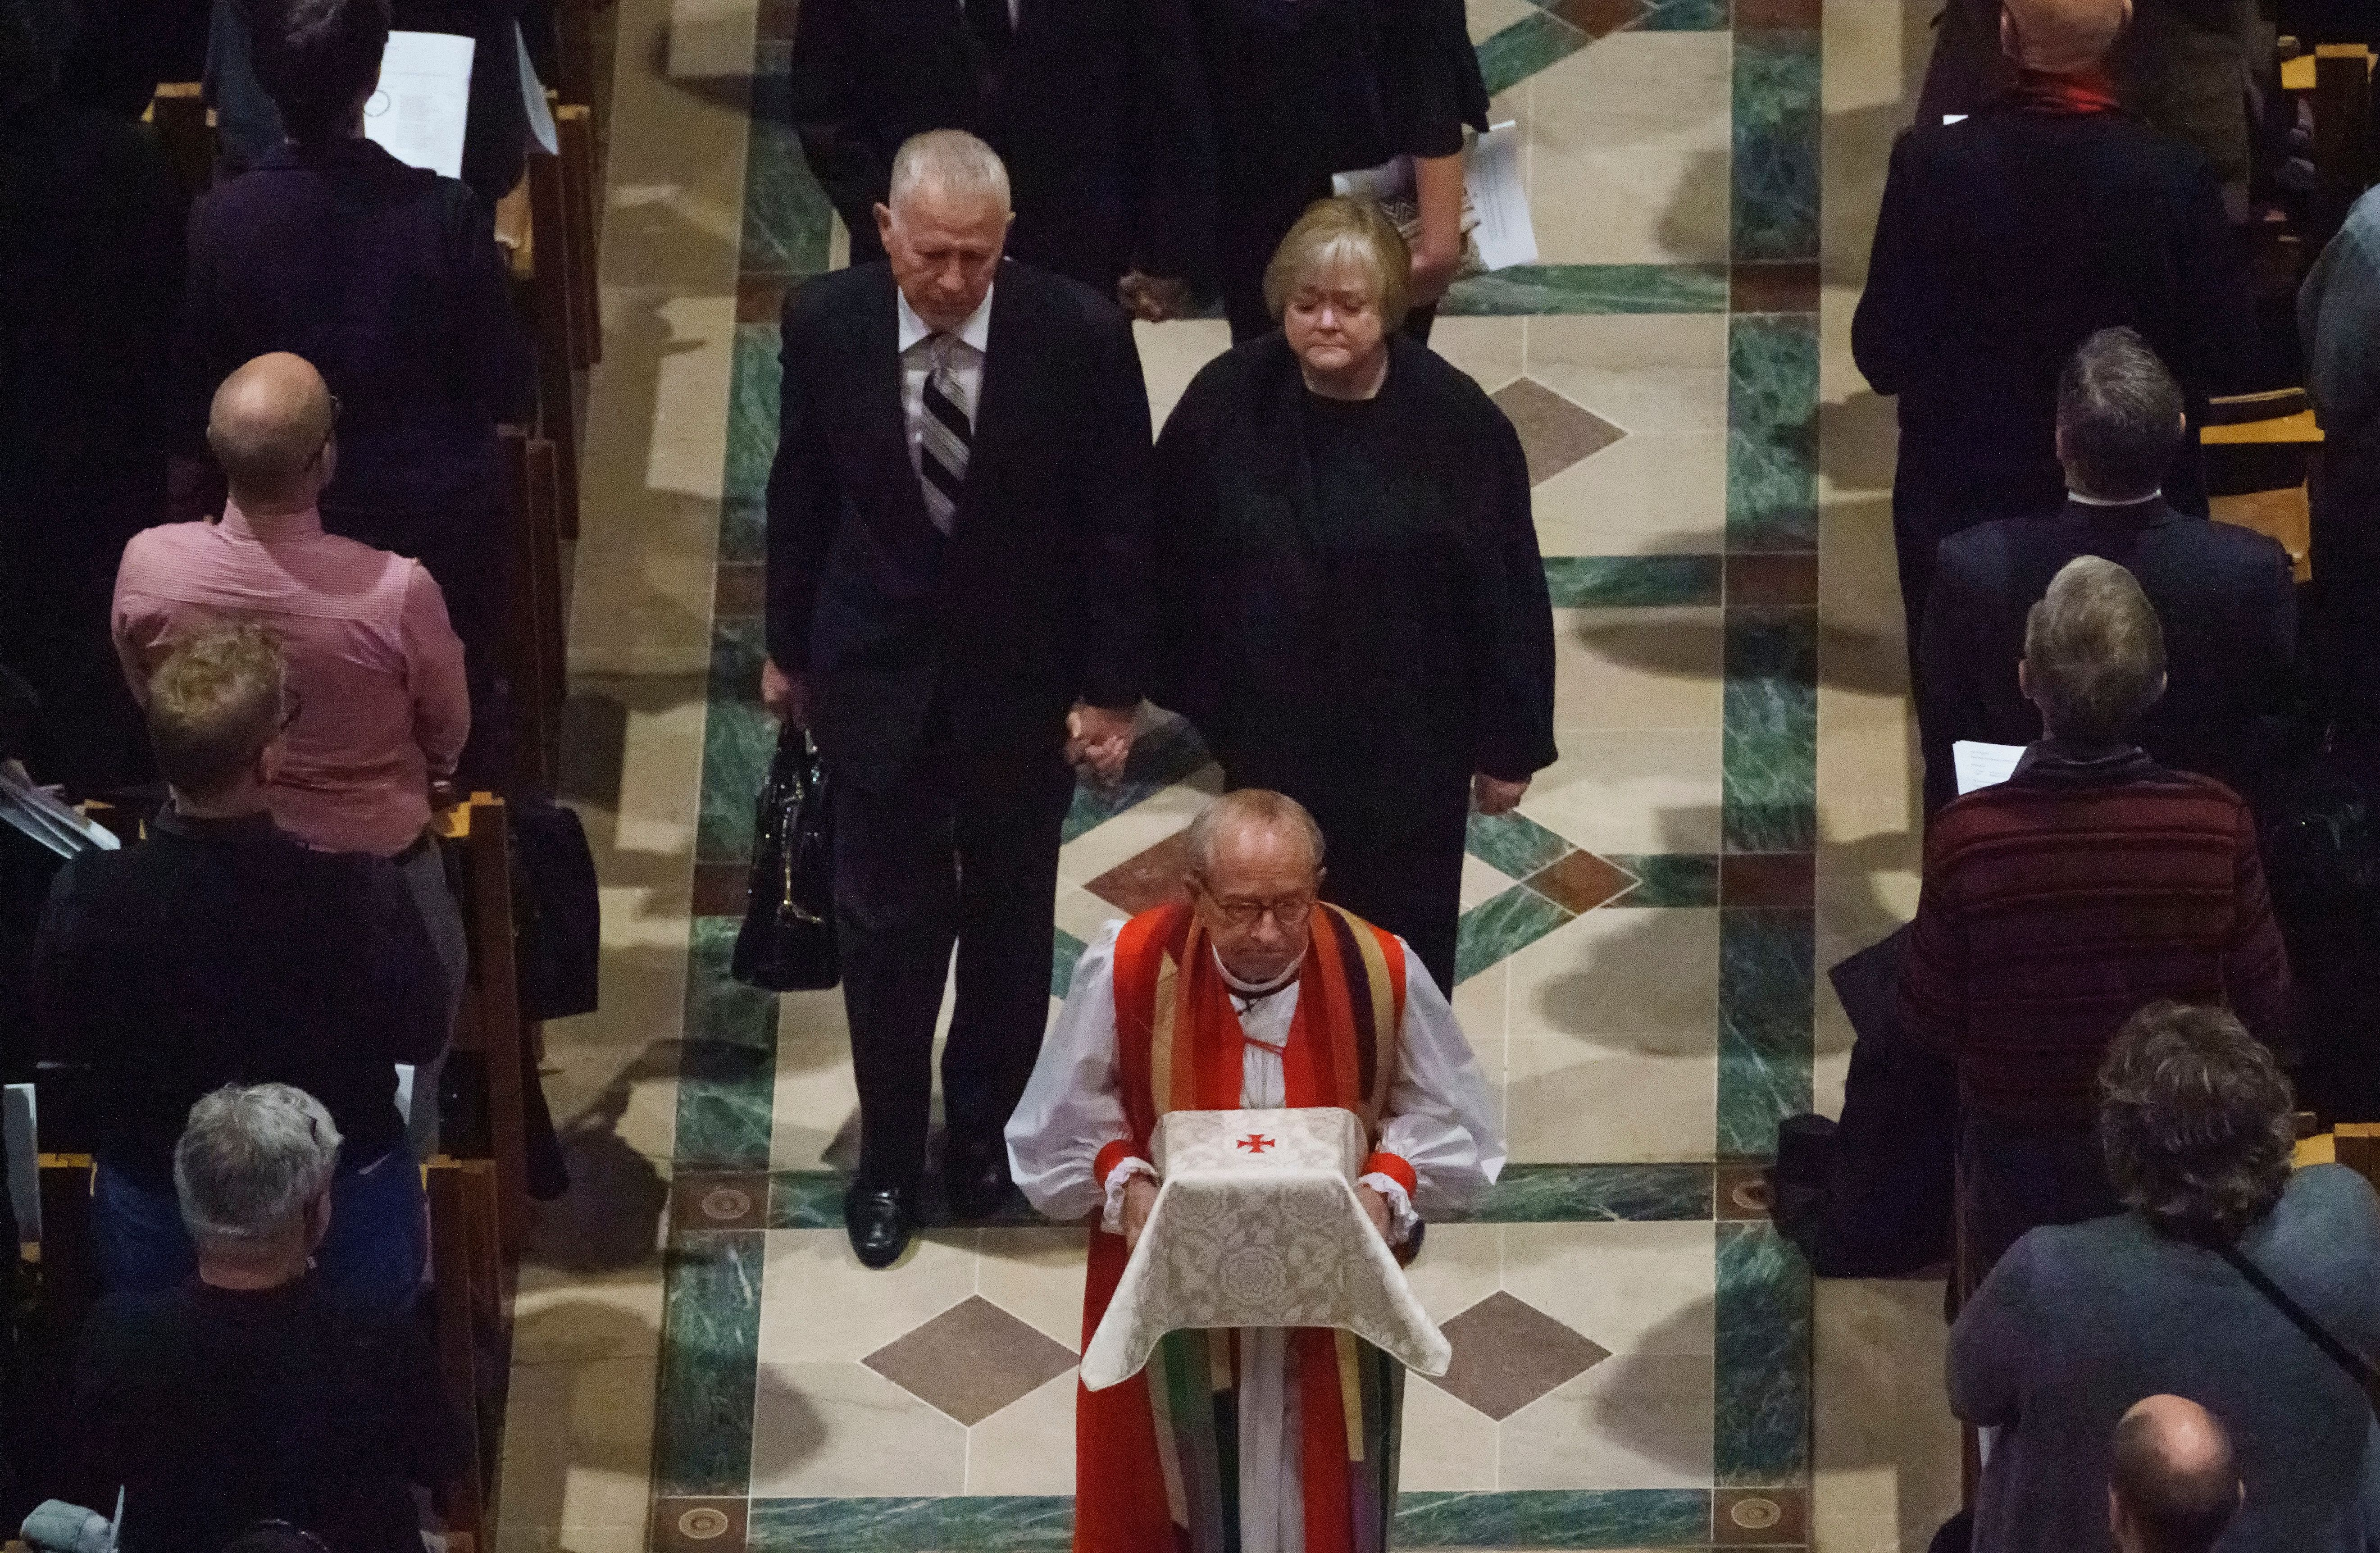 """Dennis and Judy Shepard hold hands as they walk behind Rev. V. Gene Robinson carrying their son's ashes during the at the conclusion of a """"Thanksgiving and Remembrance of Matthew Shepard"""" service at Washington National Cathedral in Washington, Friday, Oct. 26, 2018. The ashes of Matthew Shepard, whose brutal murder in the 1990s became a rallying cry for the gay rights movement, will be laid to rest in Washington National Cathedral. (AP Photo/Carolyn Kaster)"""